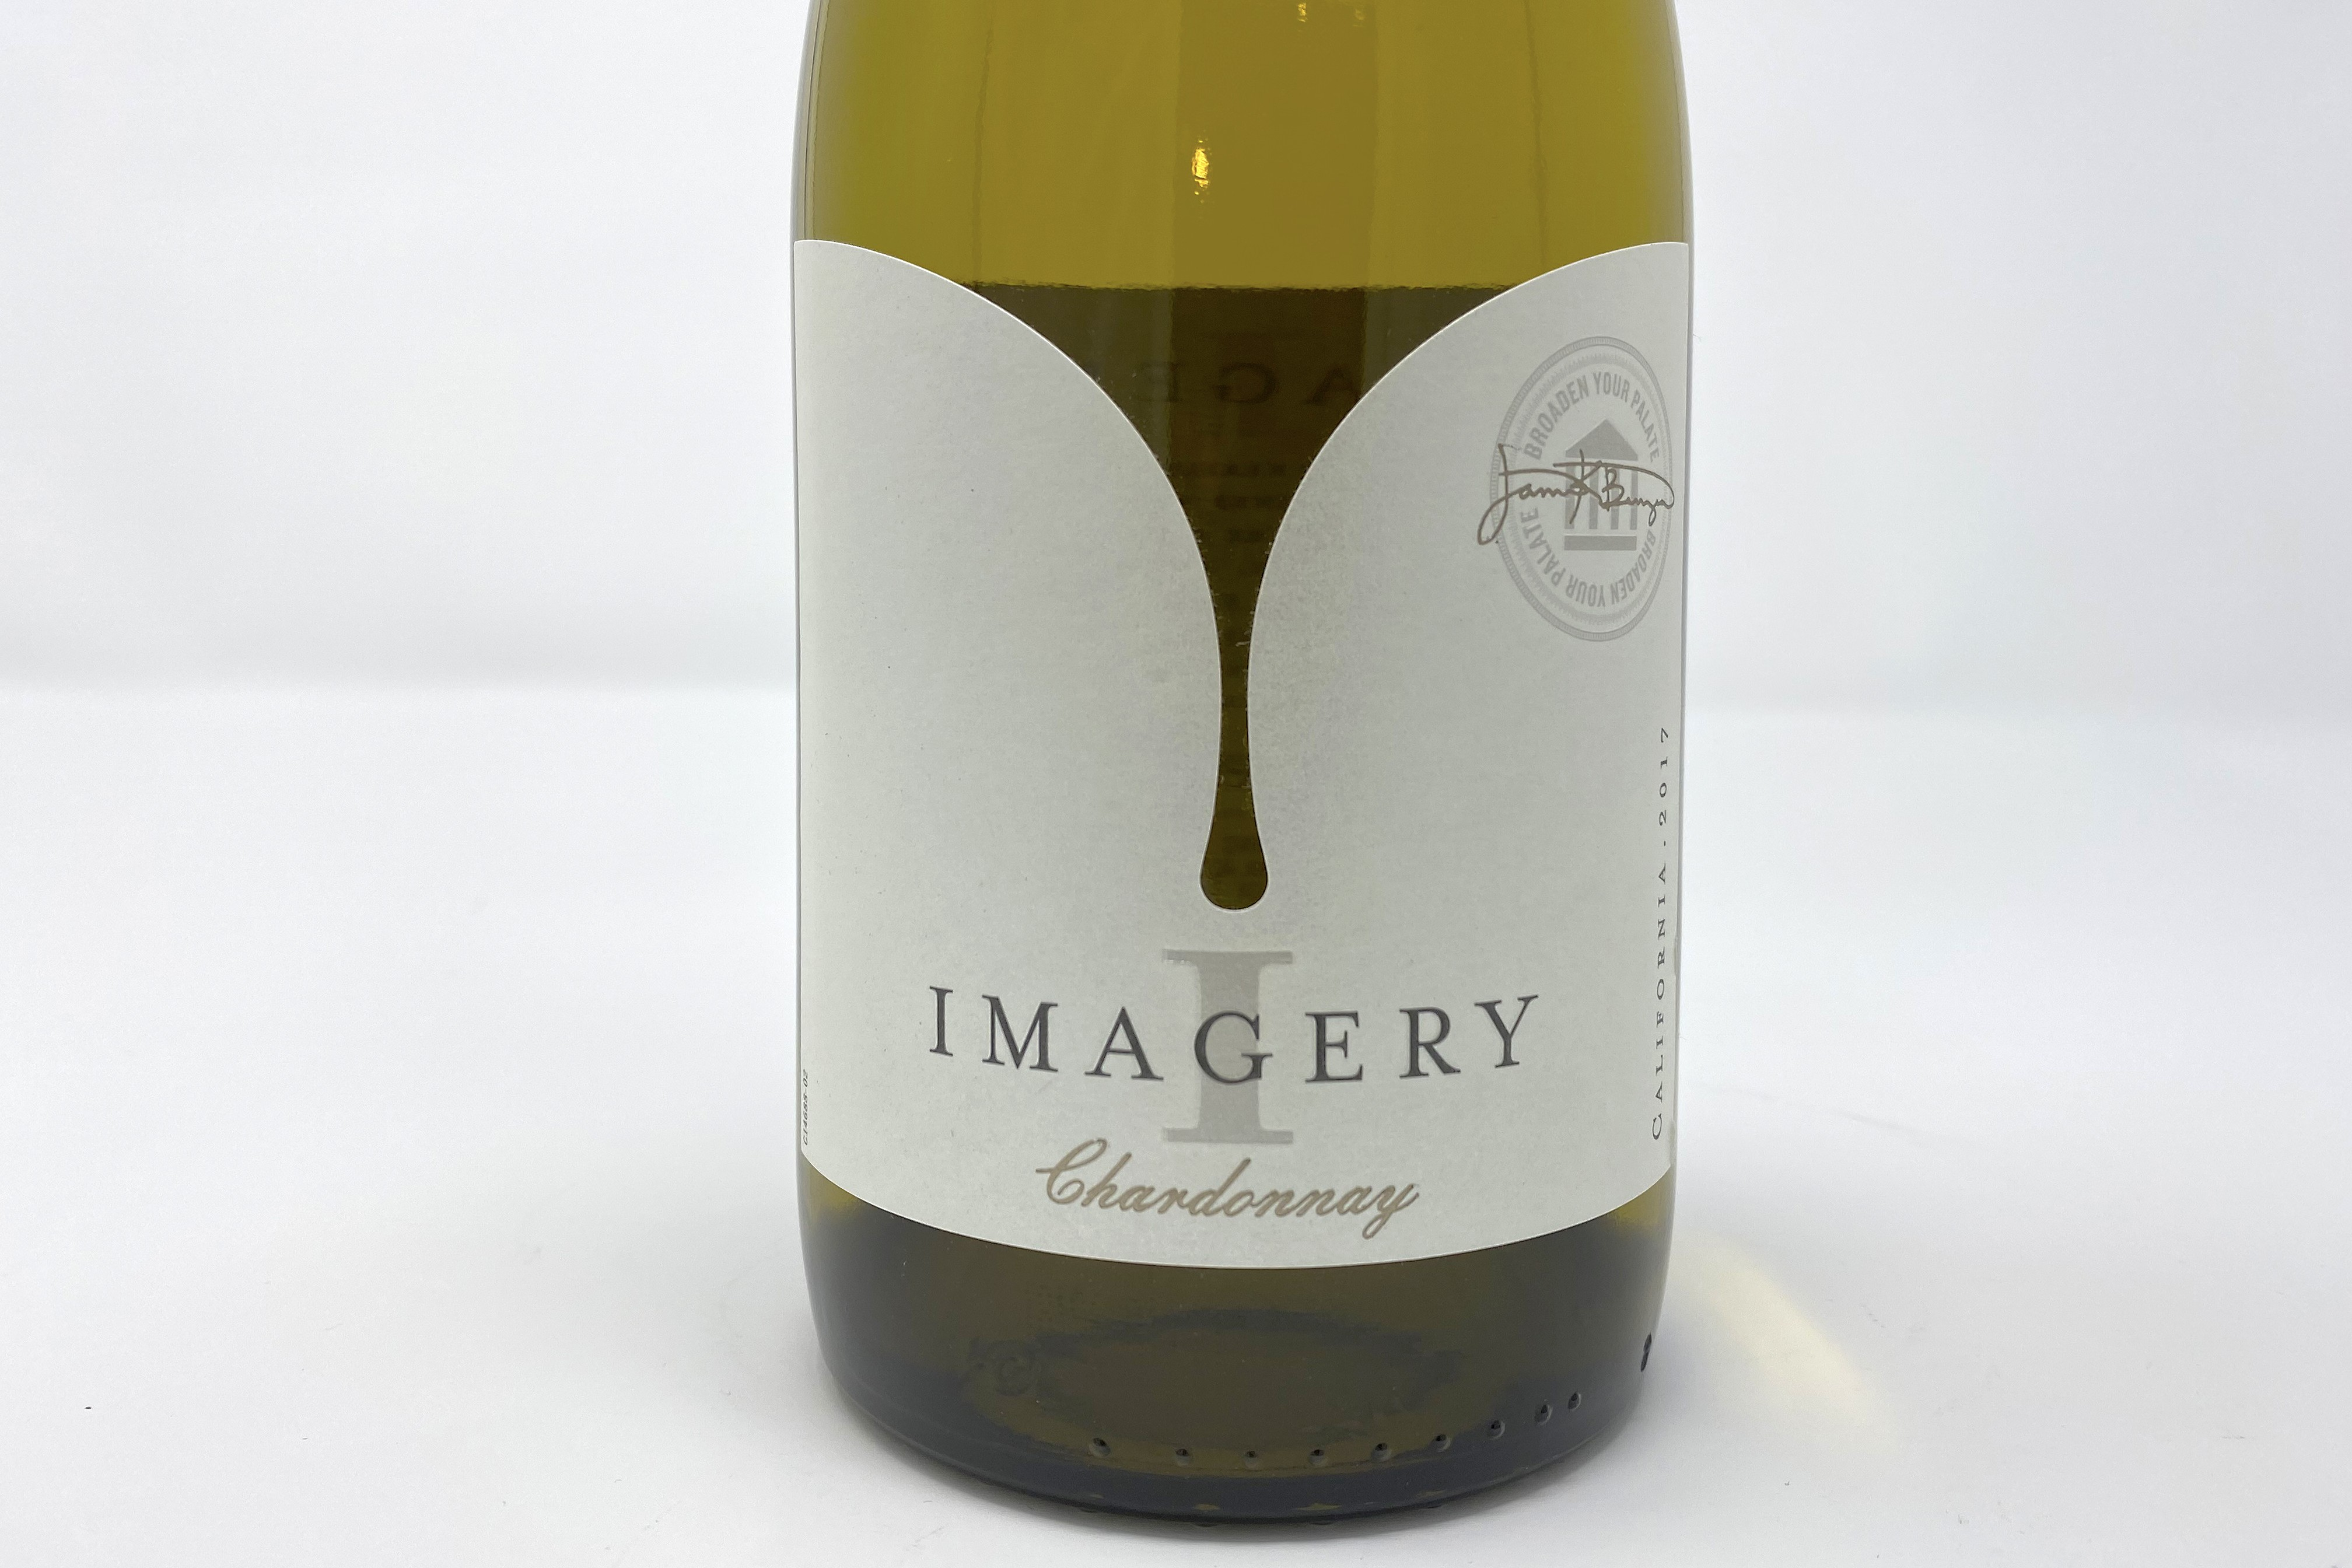 Imagery Estate Winery, Chardonnay California (2018)